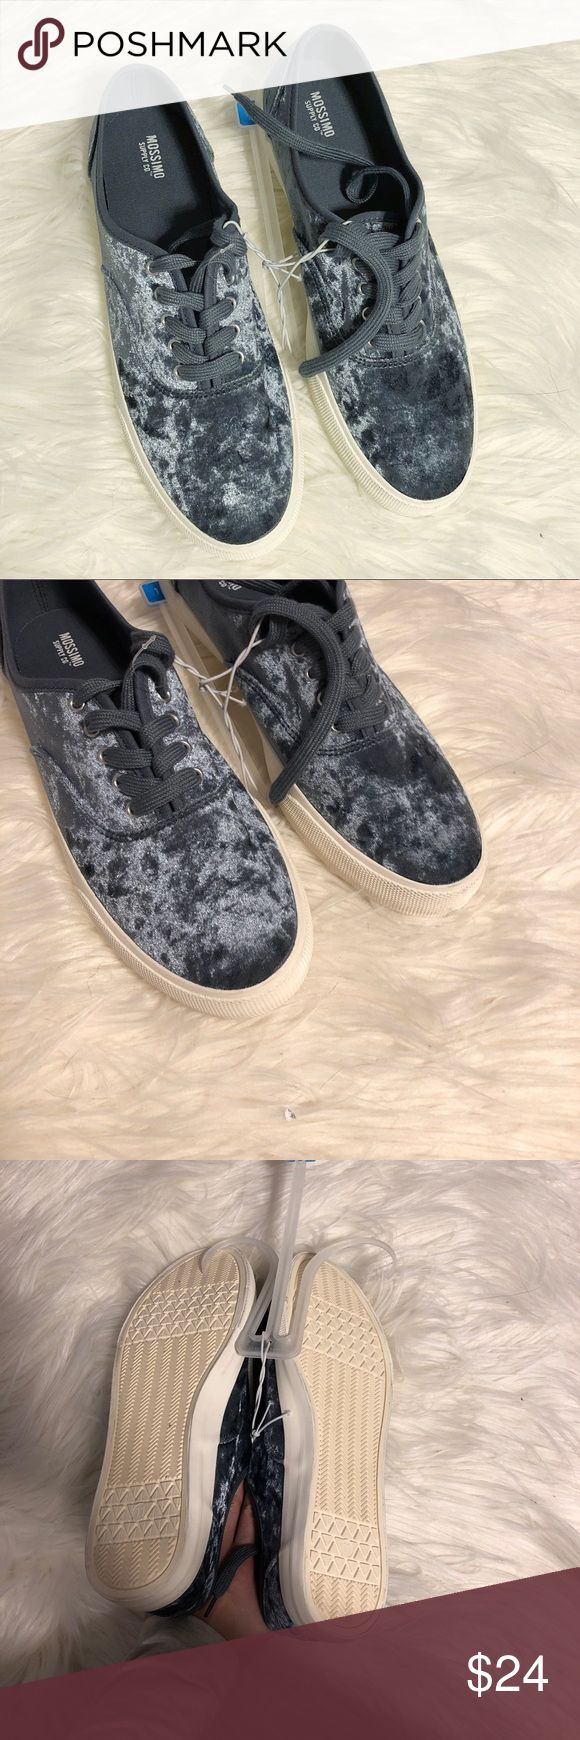 NWT Mossimo Silver Velvet Sneakers Brand new with tag attached! They're soft velour. No flaws! NO TRADES PLEASE Mossimo Supply Co Shoes Sneakers